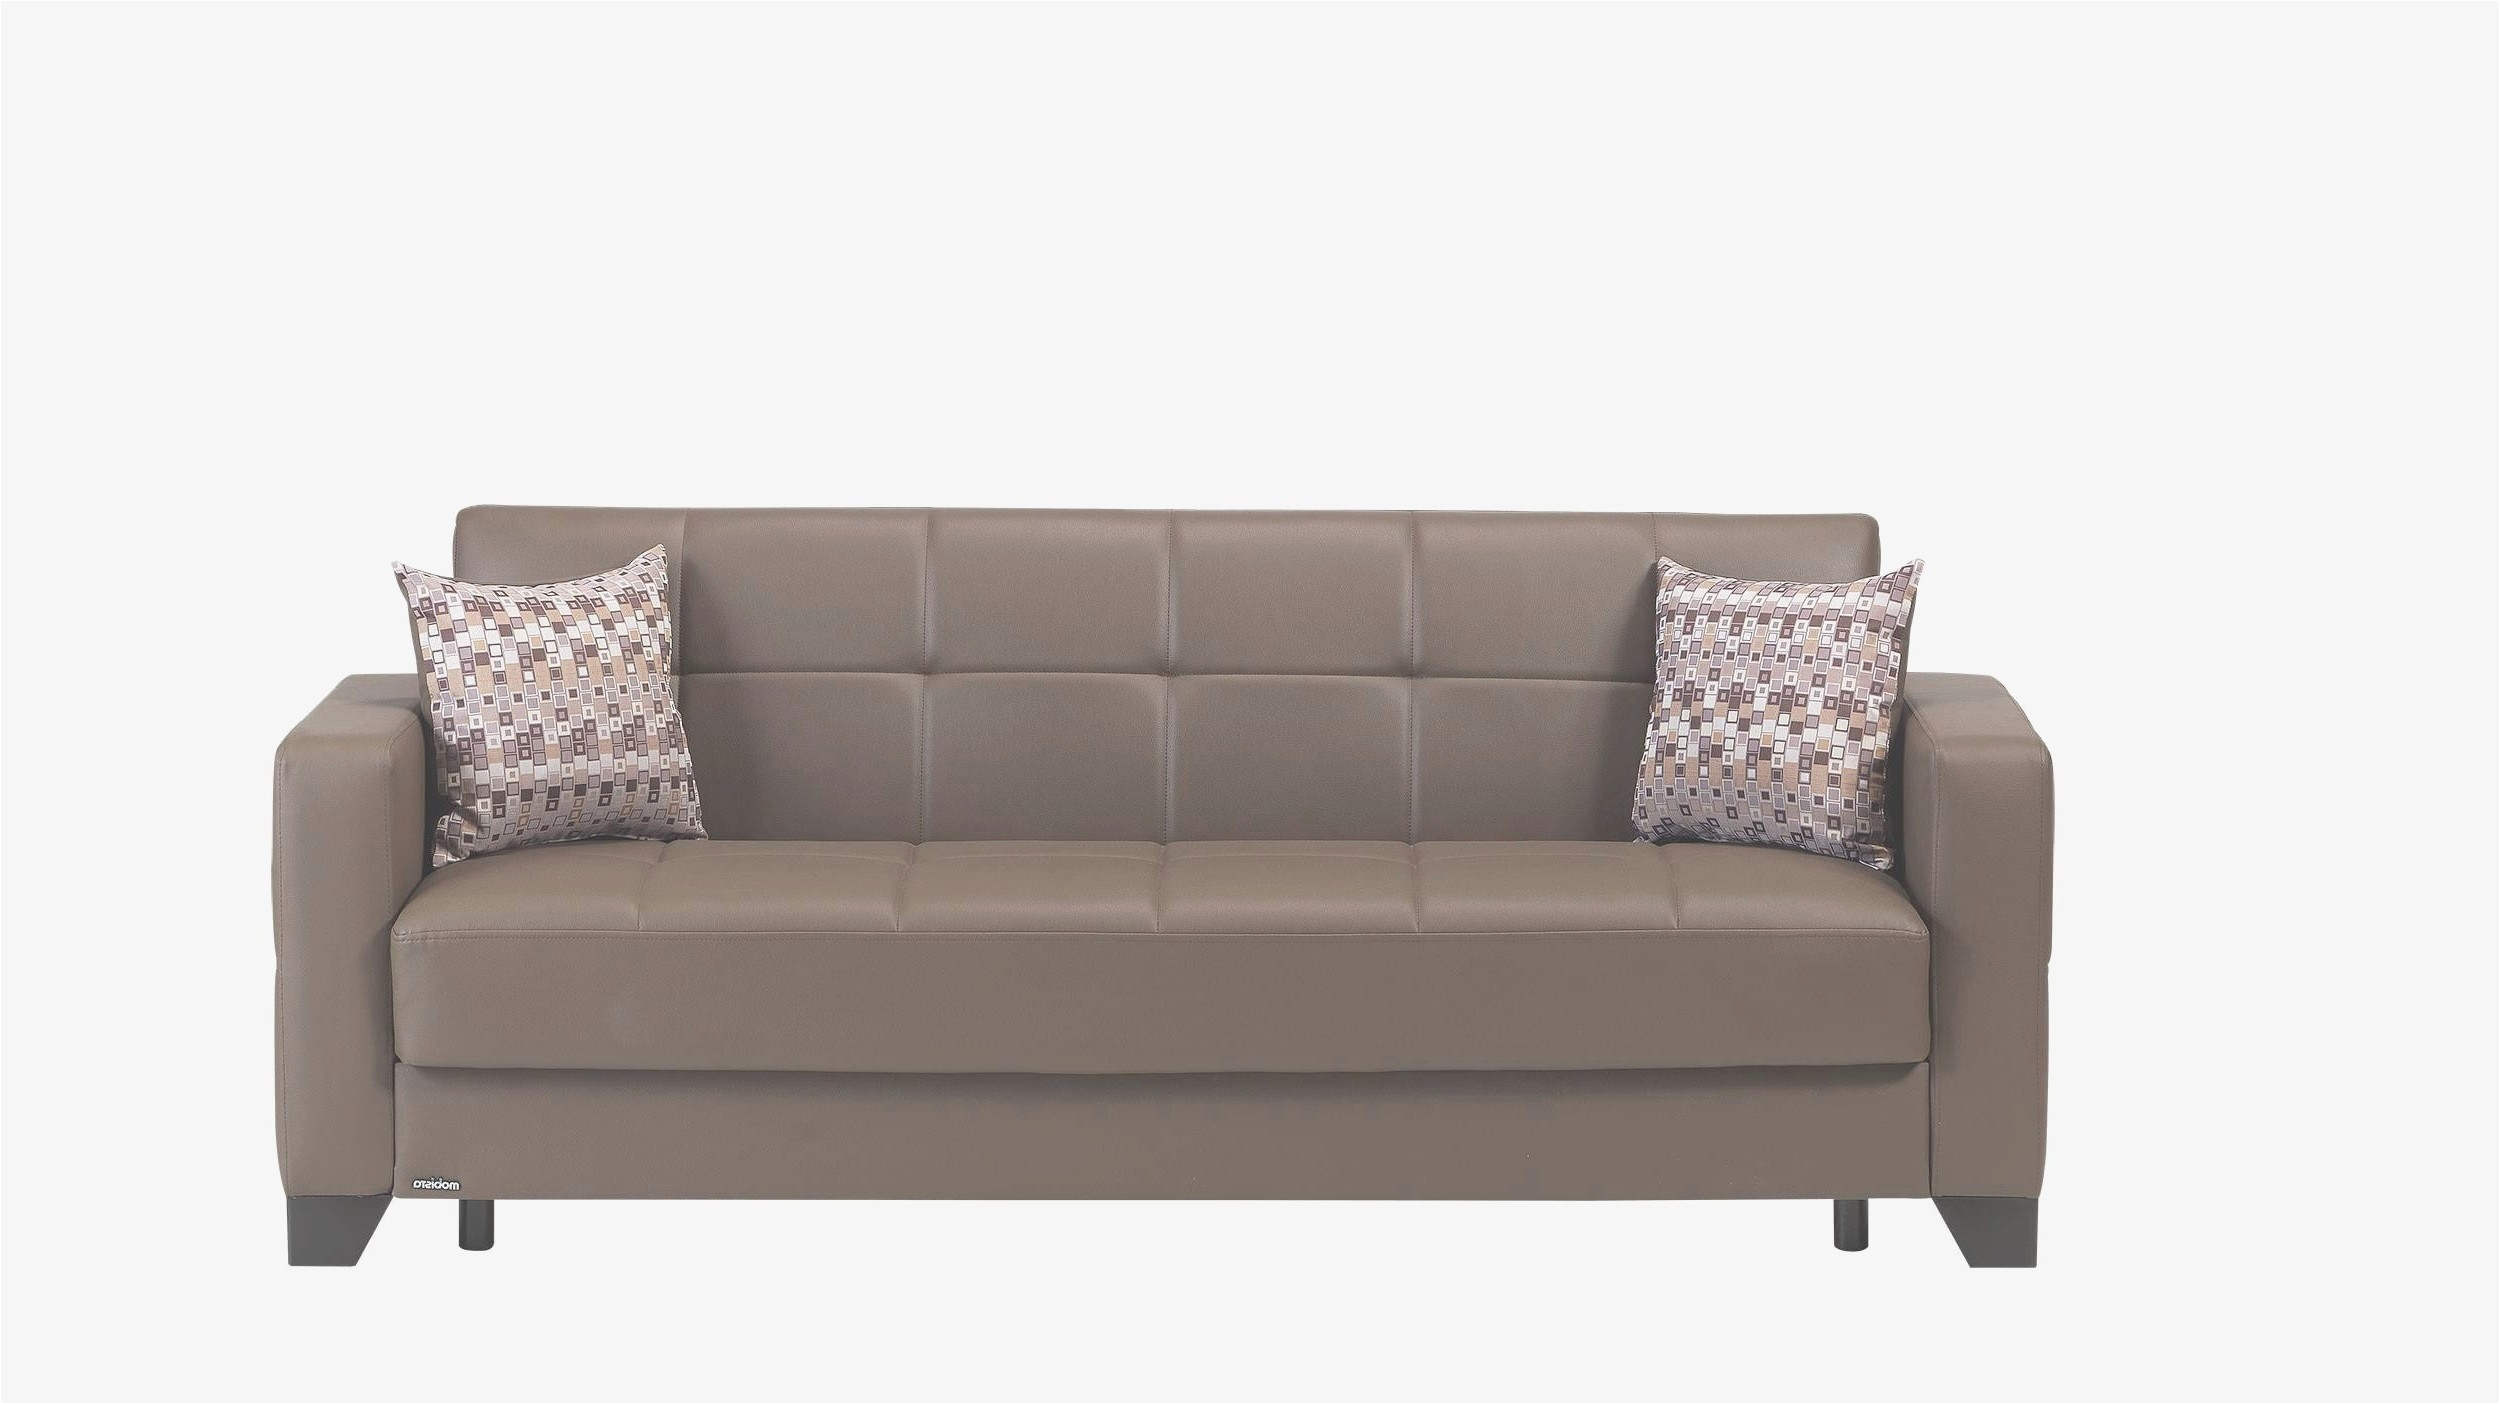 Ashley Furniture Couch Covers Luxury 30 ashley Furniture Couch Covers Home Furniture Ideas